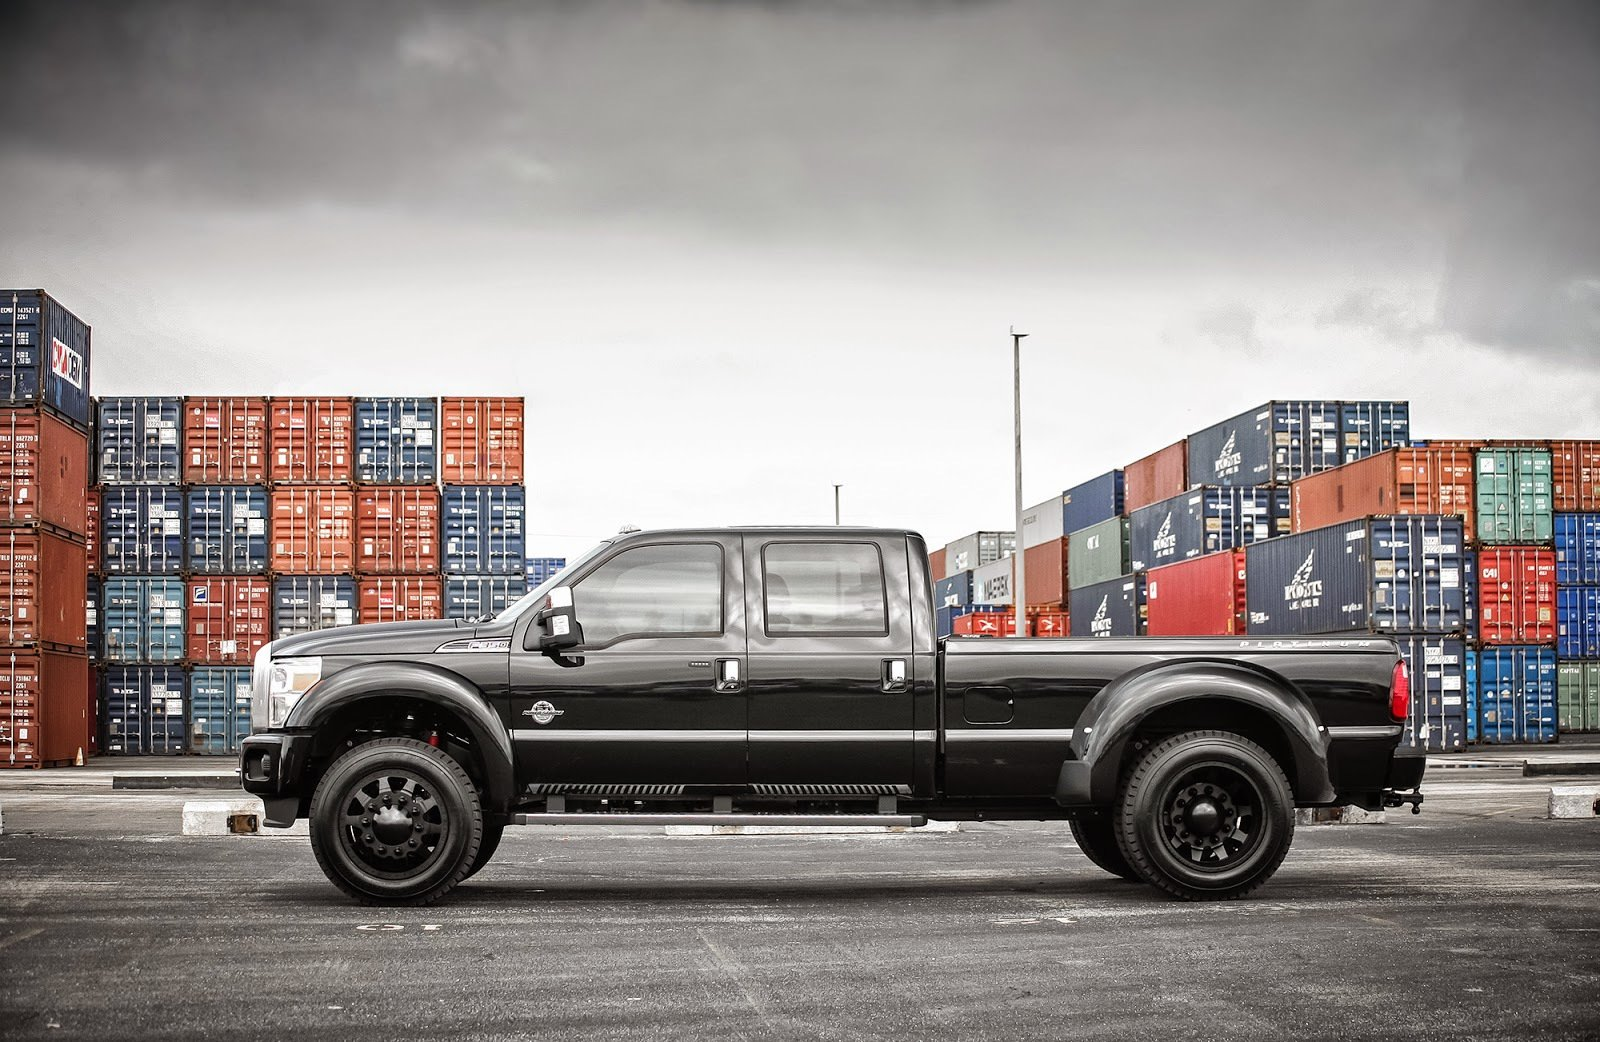 American Force Wheels Facebook >> Ford F350 super Duty truck pickup cars black tuning wallpaper | 1600x1042 | 577690 | WallpaperUP